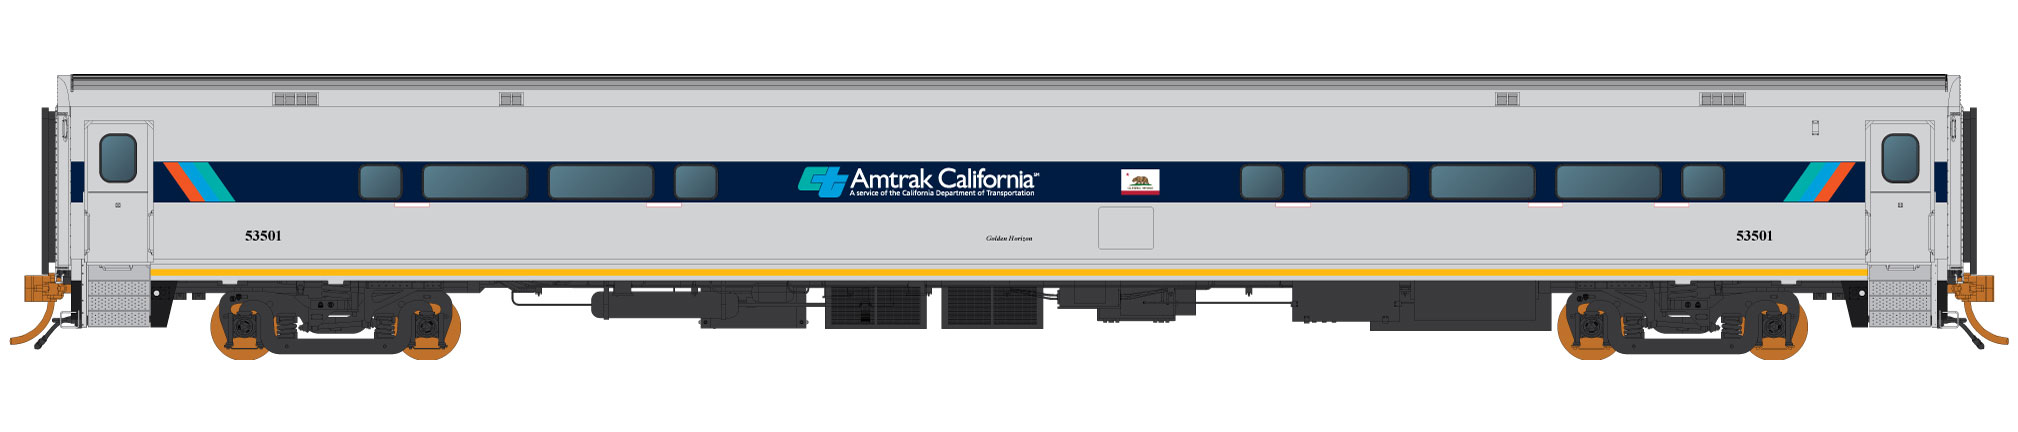 "Rapido Trains 128032  ""Golden Horizon"" Dinette, Amtrak California"